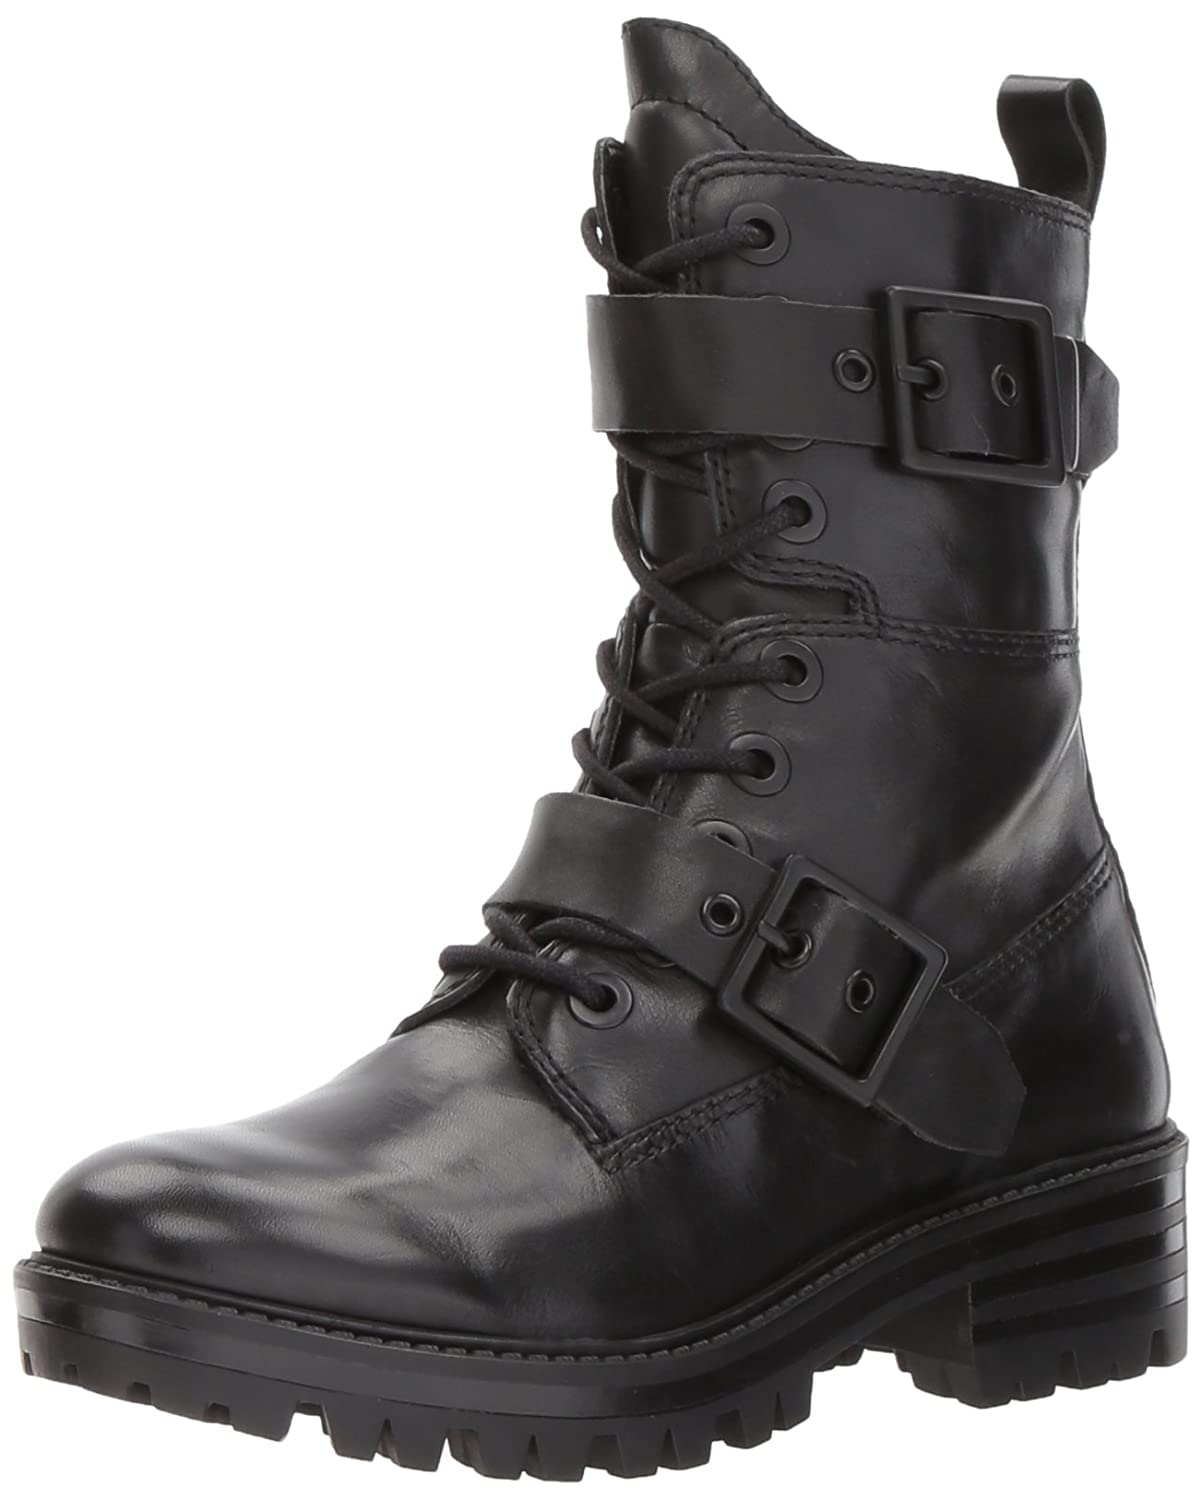 kendall-+-kylie-womens-eliya-combat-boot by kendall-+-kylie